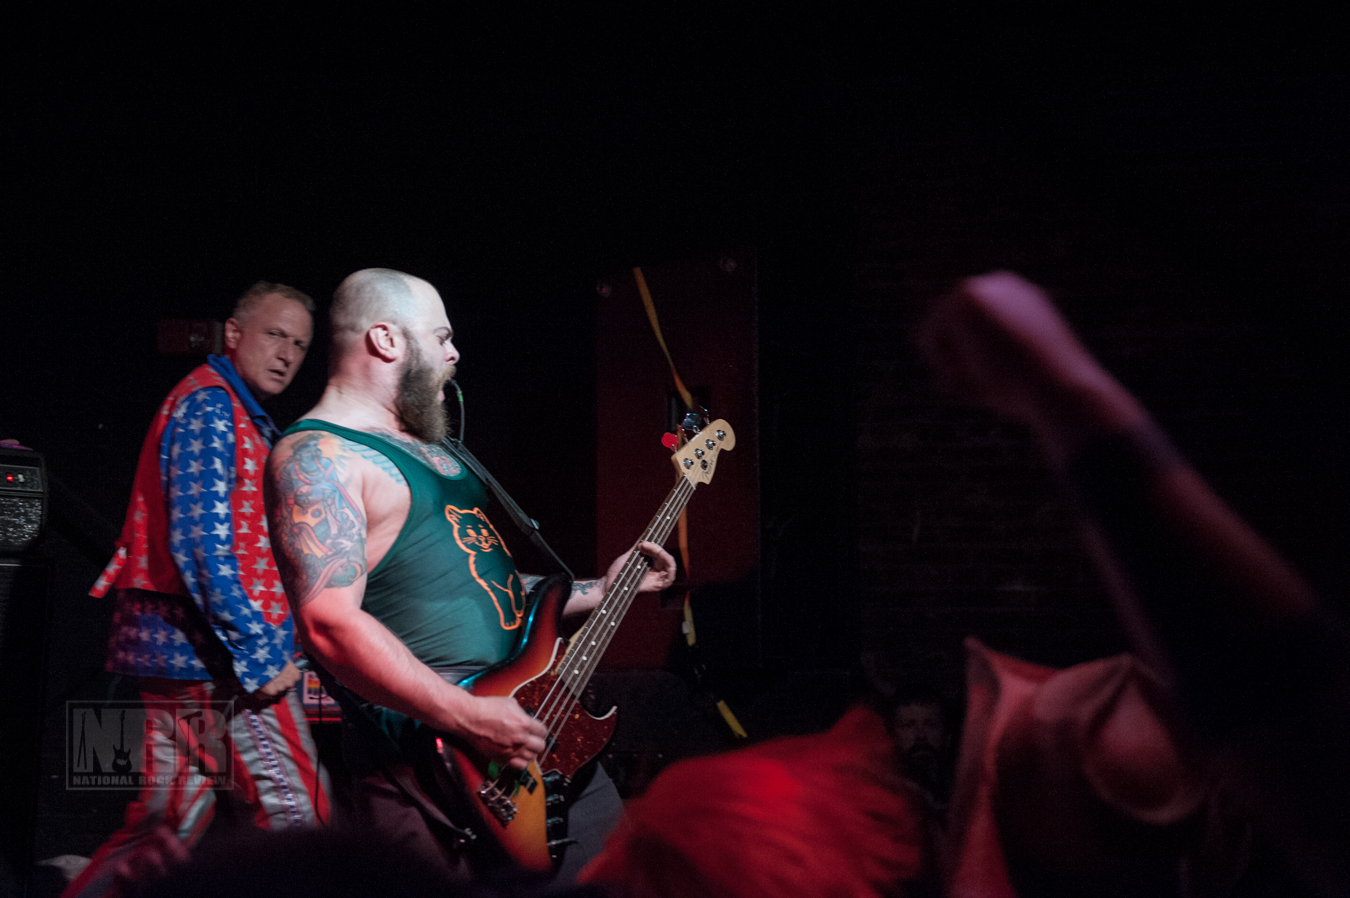 MeatMen-Branx-Portland_OR-20140605-WmRiddle-024.jpg